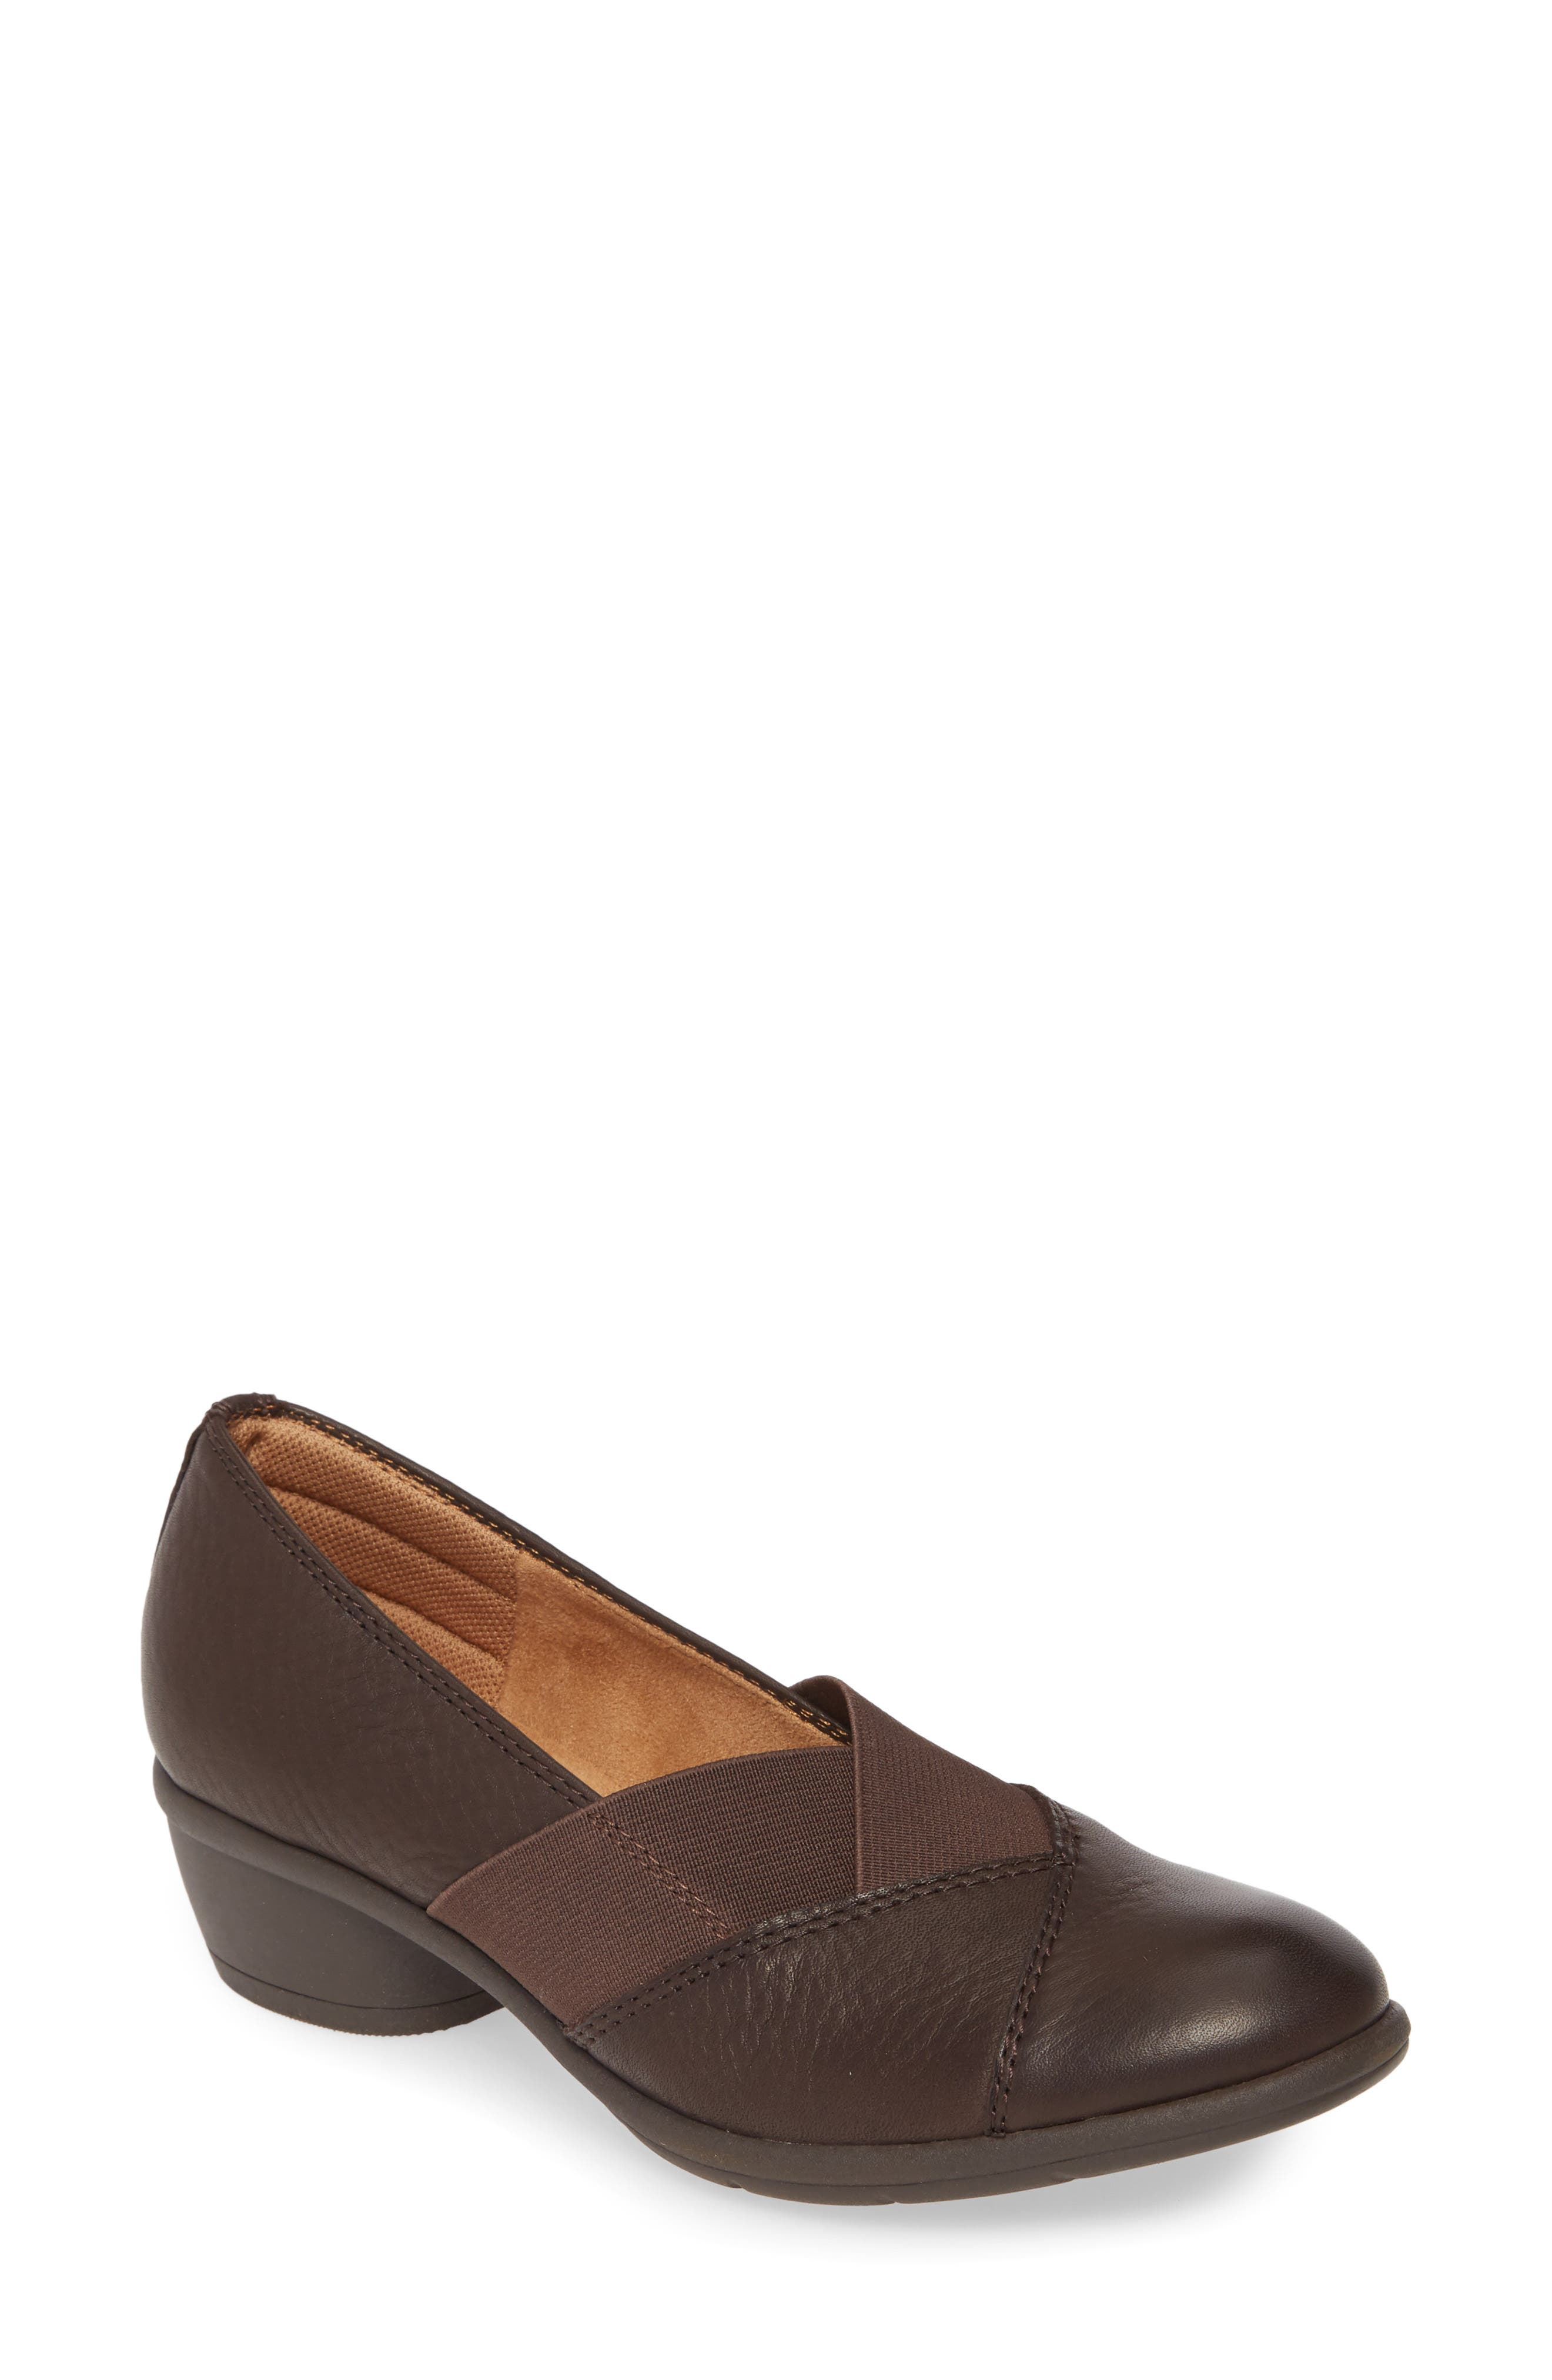 efbd3bae Women's Shoes New Arrivals: Boots, Sneakers & Sandals | Nordstrom